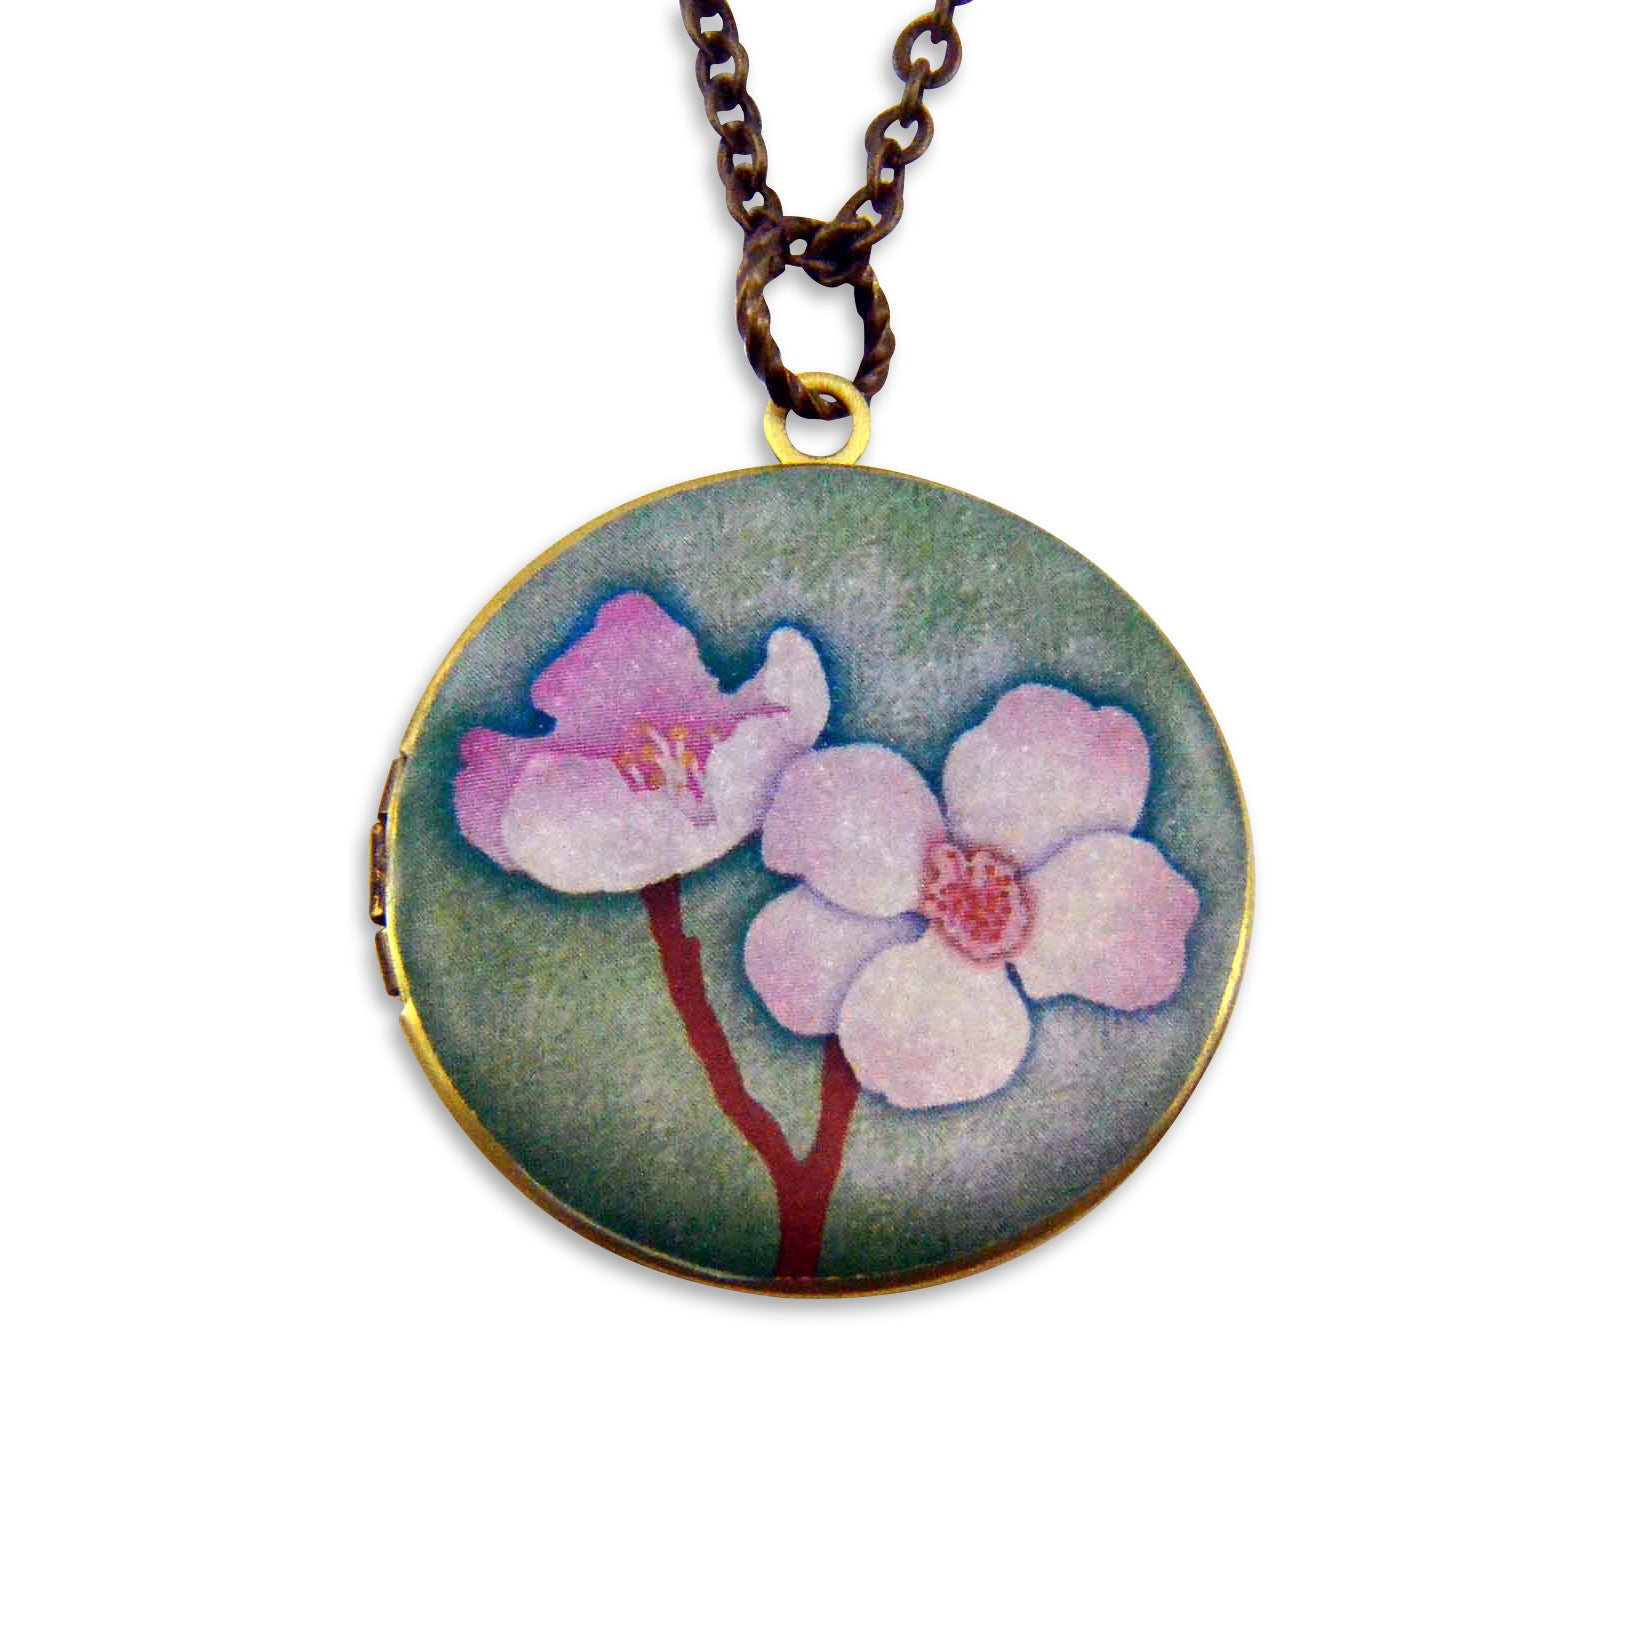 Cherry Blossom Vintage Theme Photo Locket - Gwen Delicious Jewelry Designs